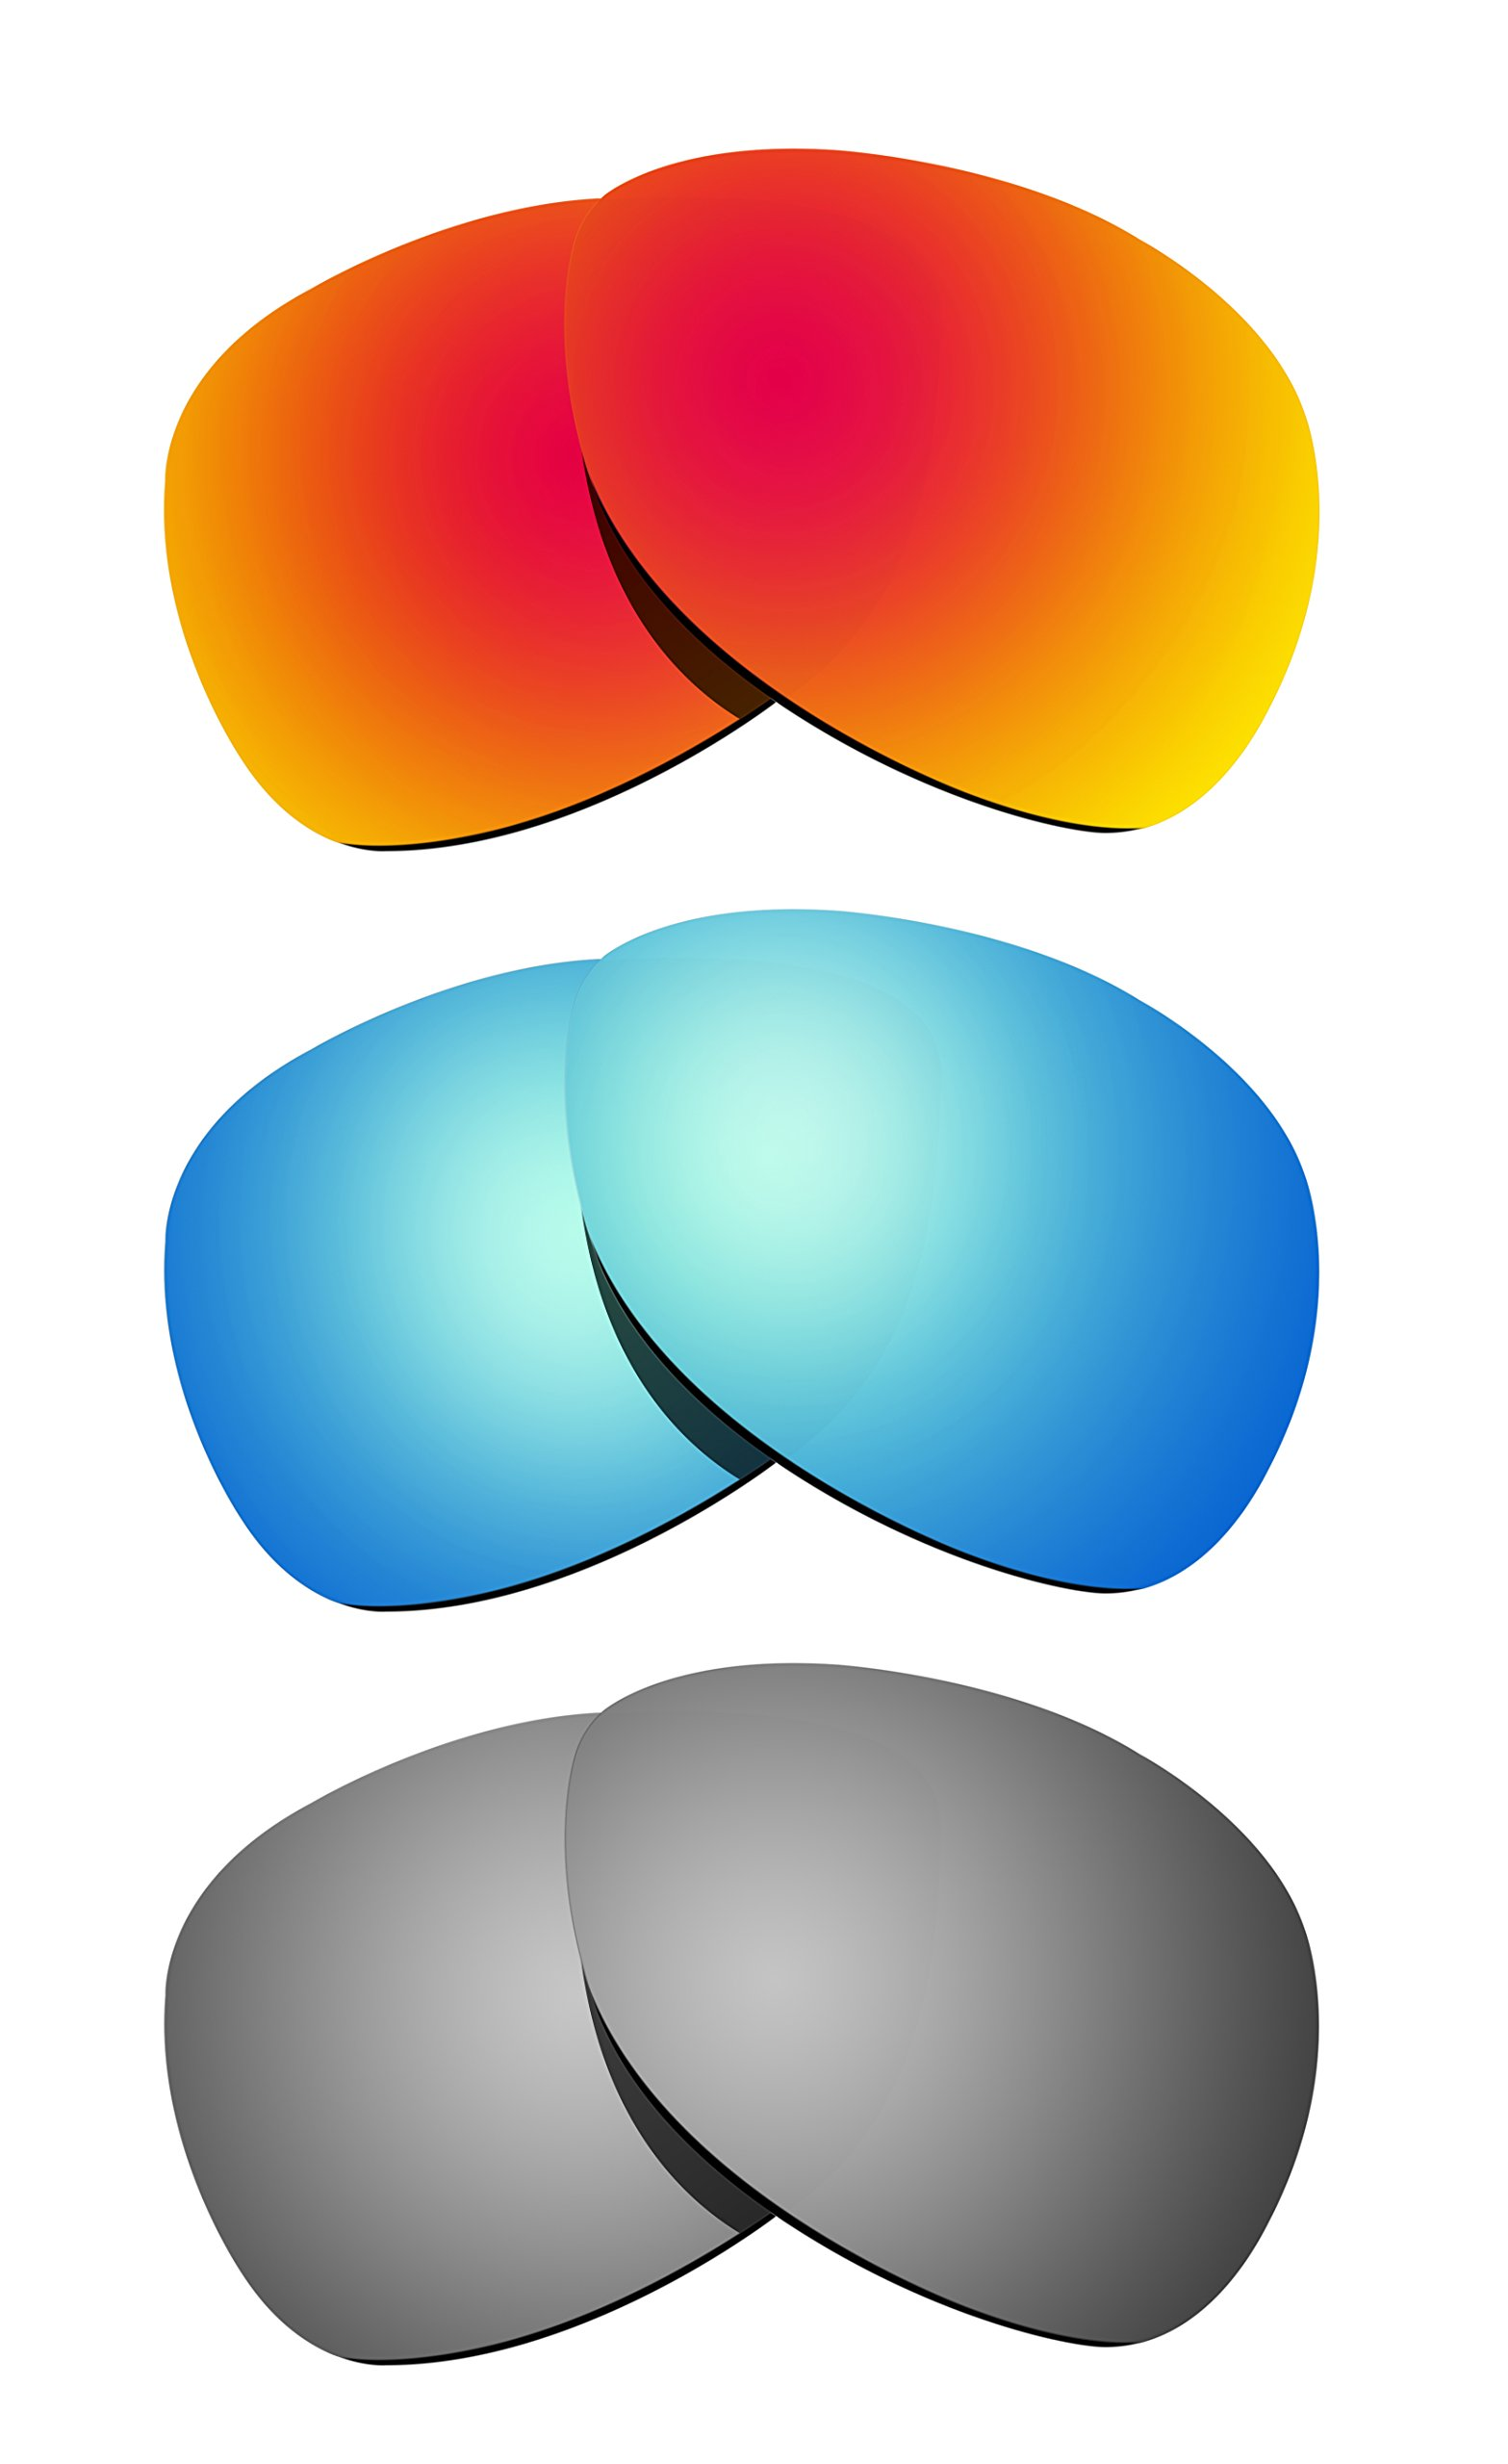 Littlebird4 3 Pairs 1.5mm Polarized Replacement Lenses for Oakley Crosshair Sunglasses - Multiple Options (Silver+Fire Red+Ice Blue)